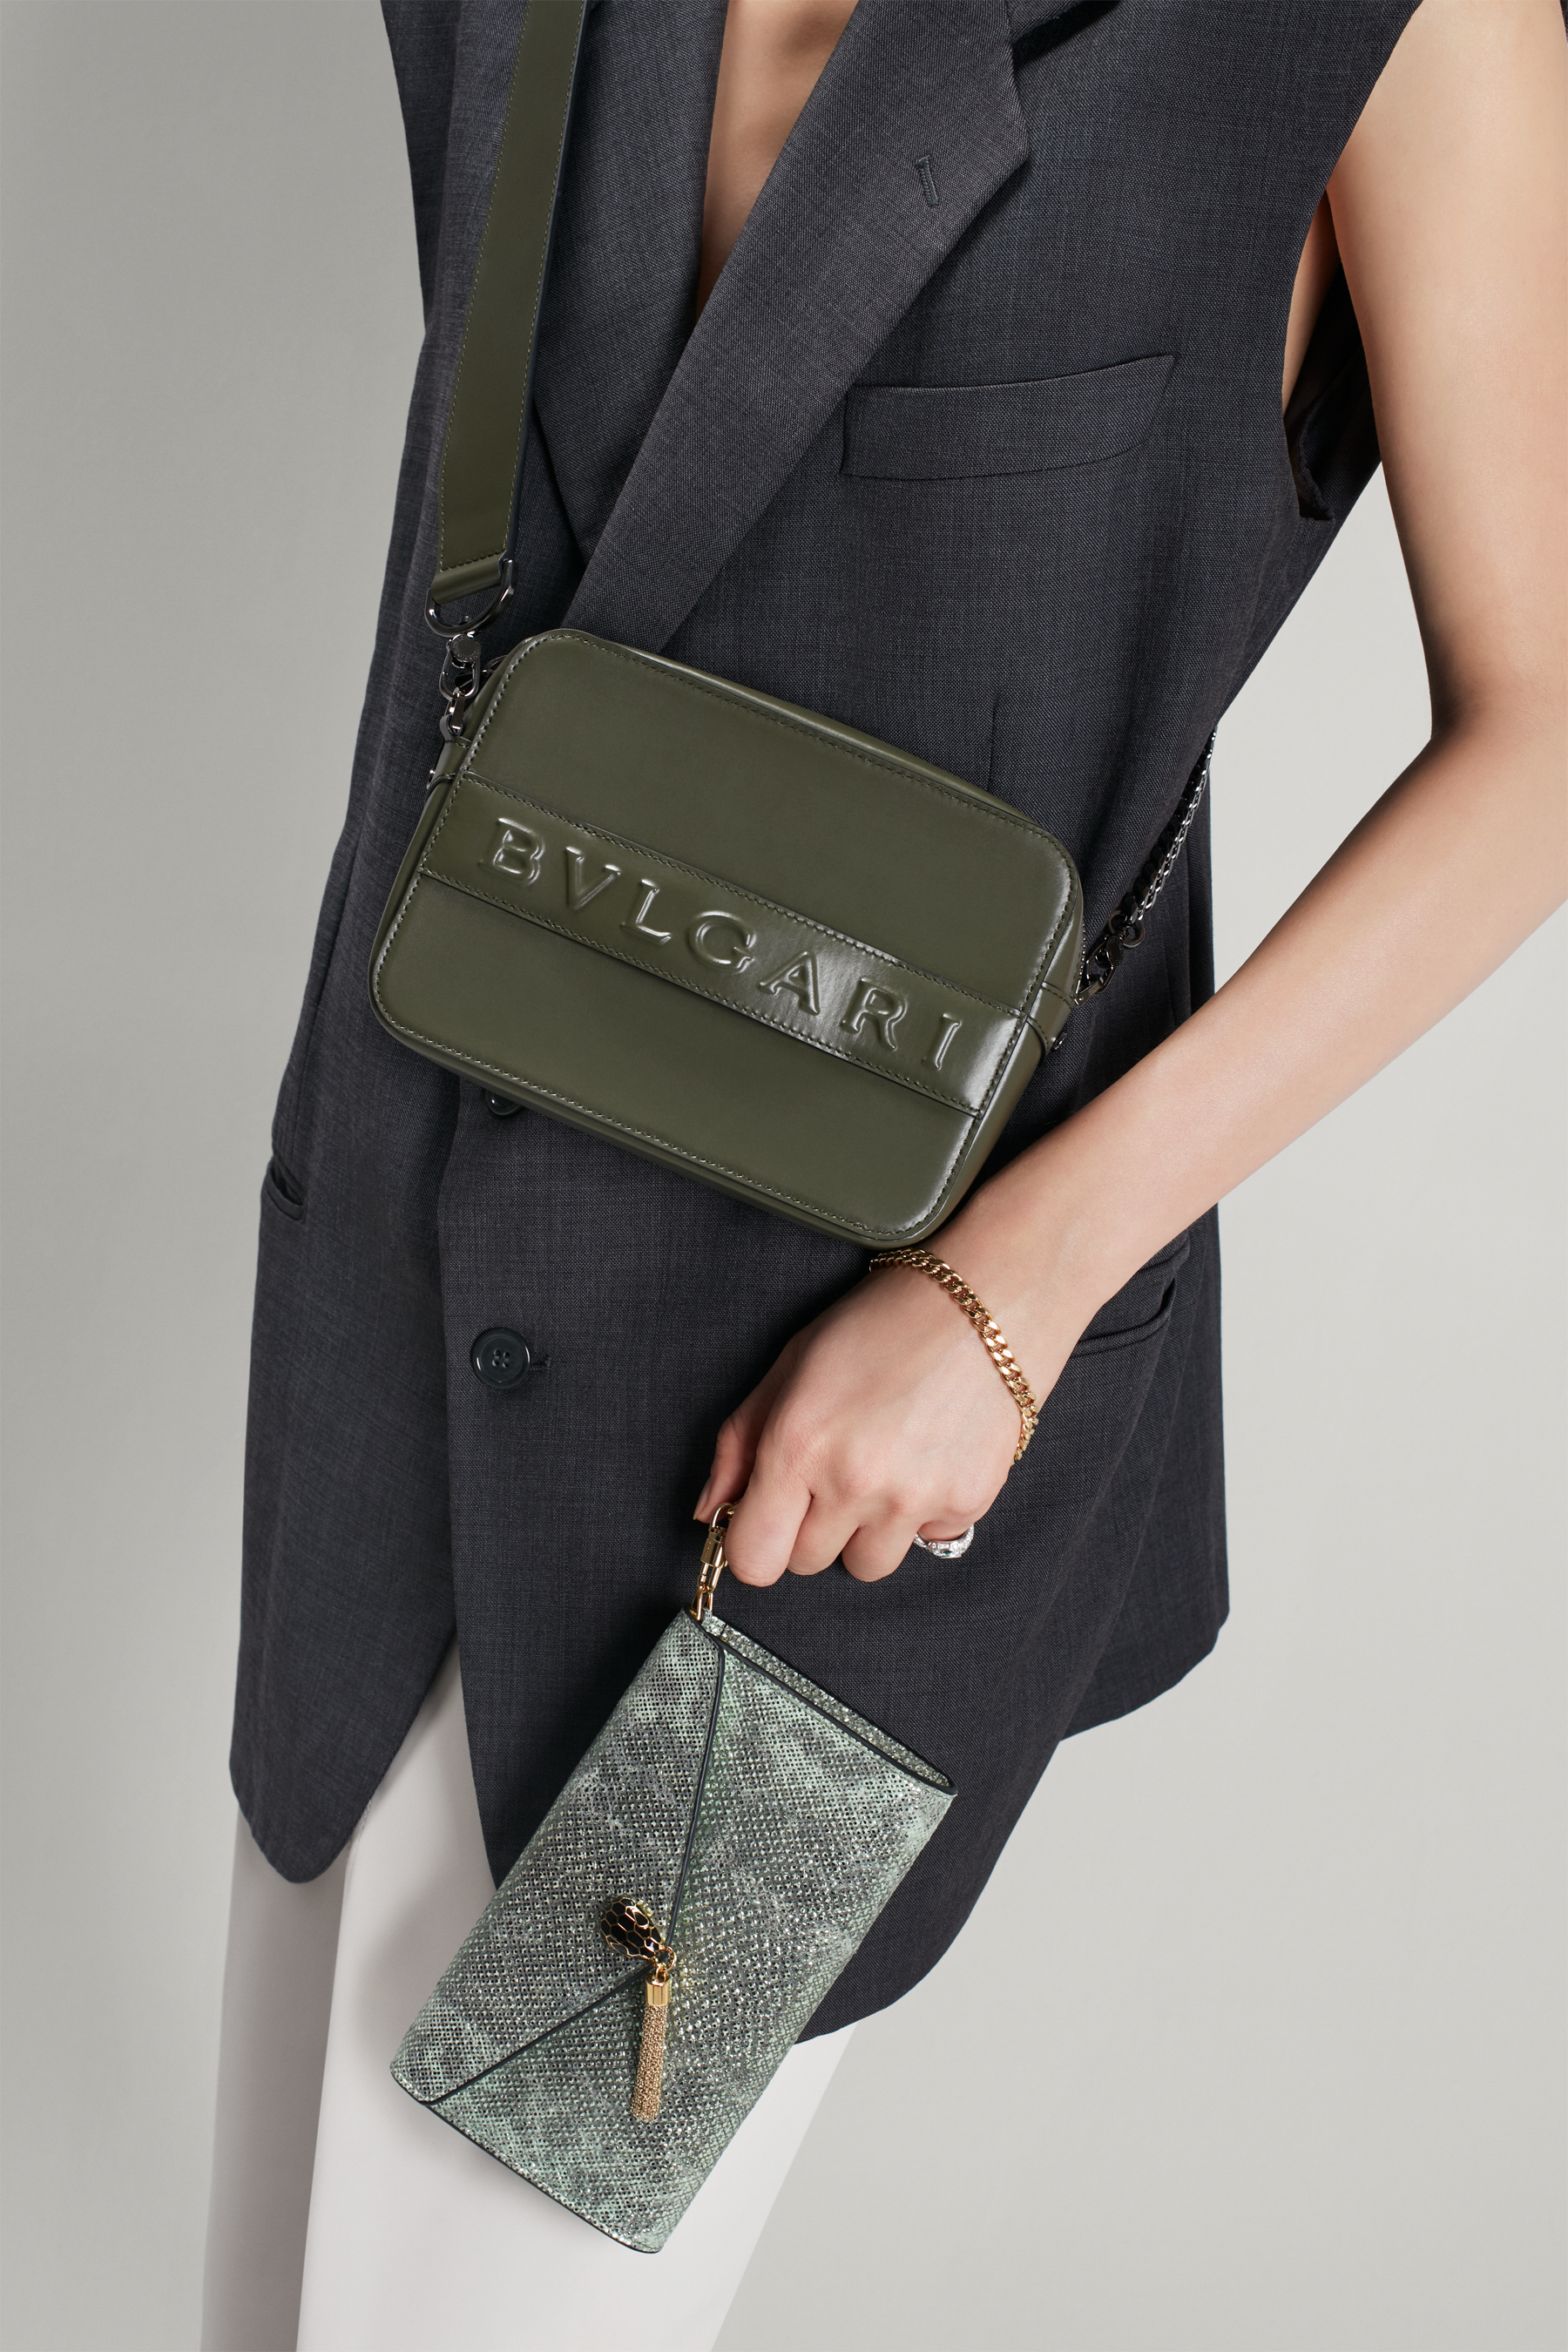 """Bvlgari Logo"" camera bag in mimetic jade calf leather with zipped closure. Dark ruthenium plated brass hardware. Camera-Bag image 2"